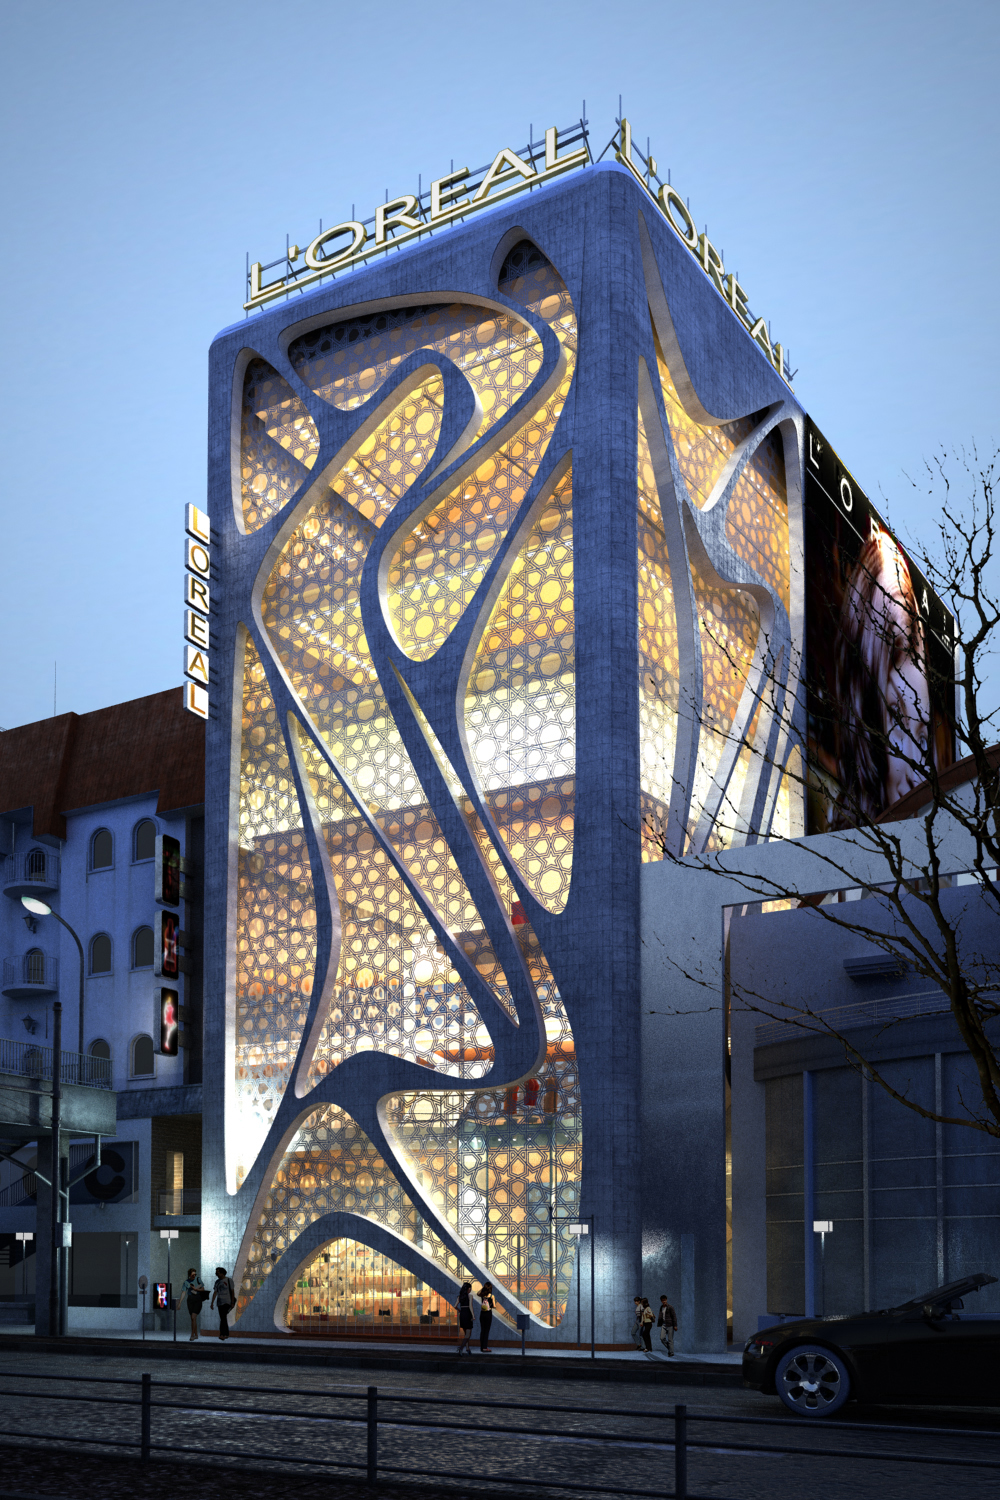 Modern Architecture Jaw Dropping Projects By Power Design: World Of Architecture: New L'Oreal Office Building By IAMZ